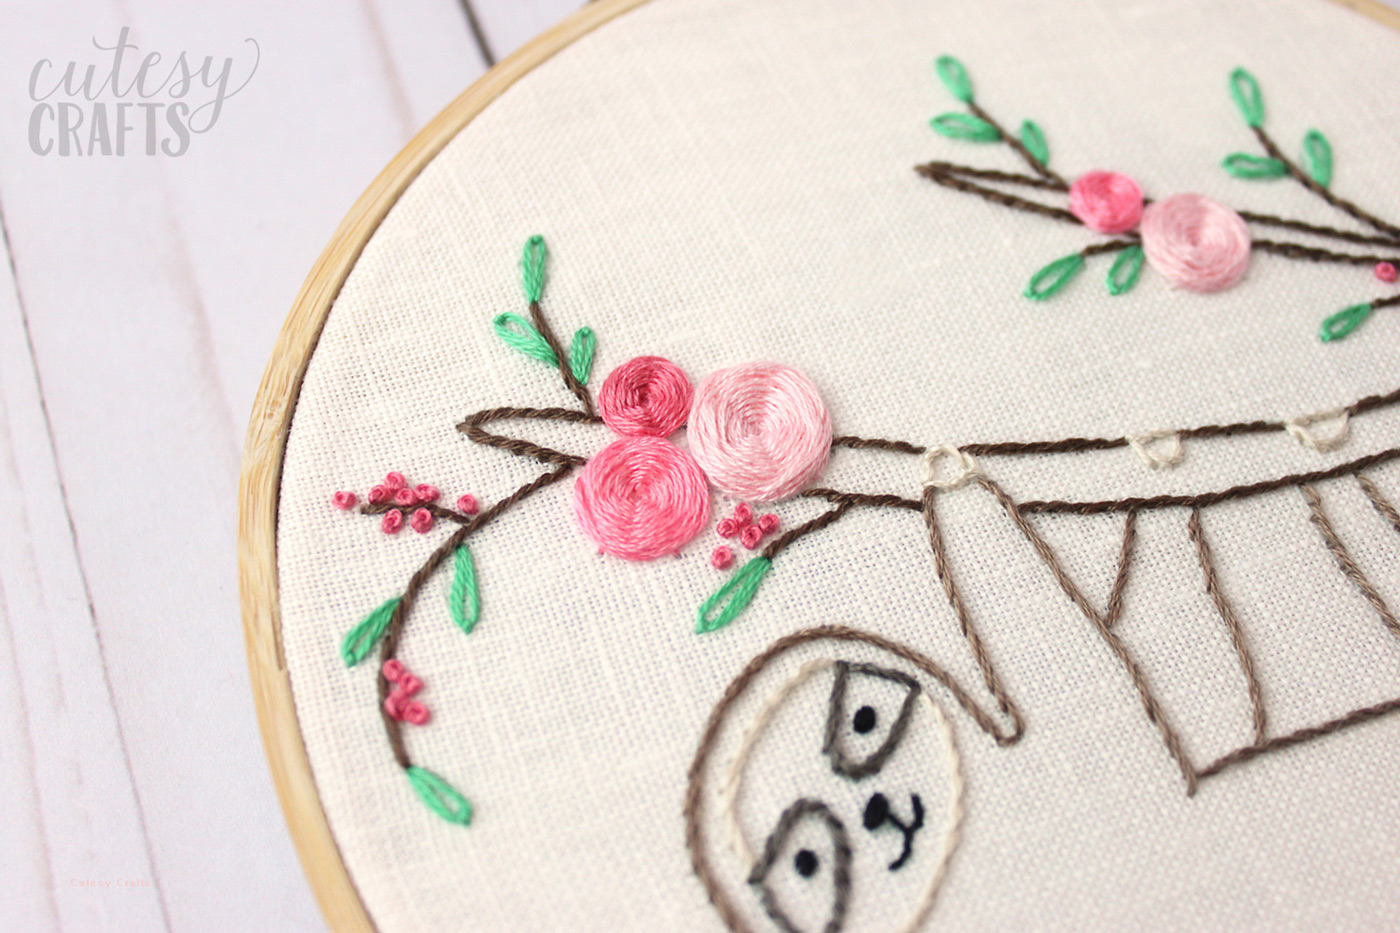 Embroidery Designs Patterns